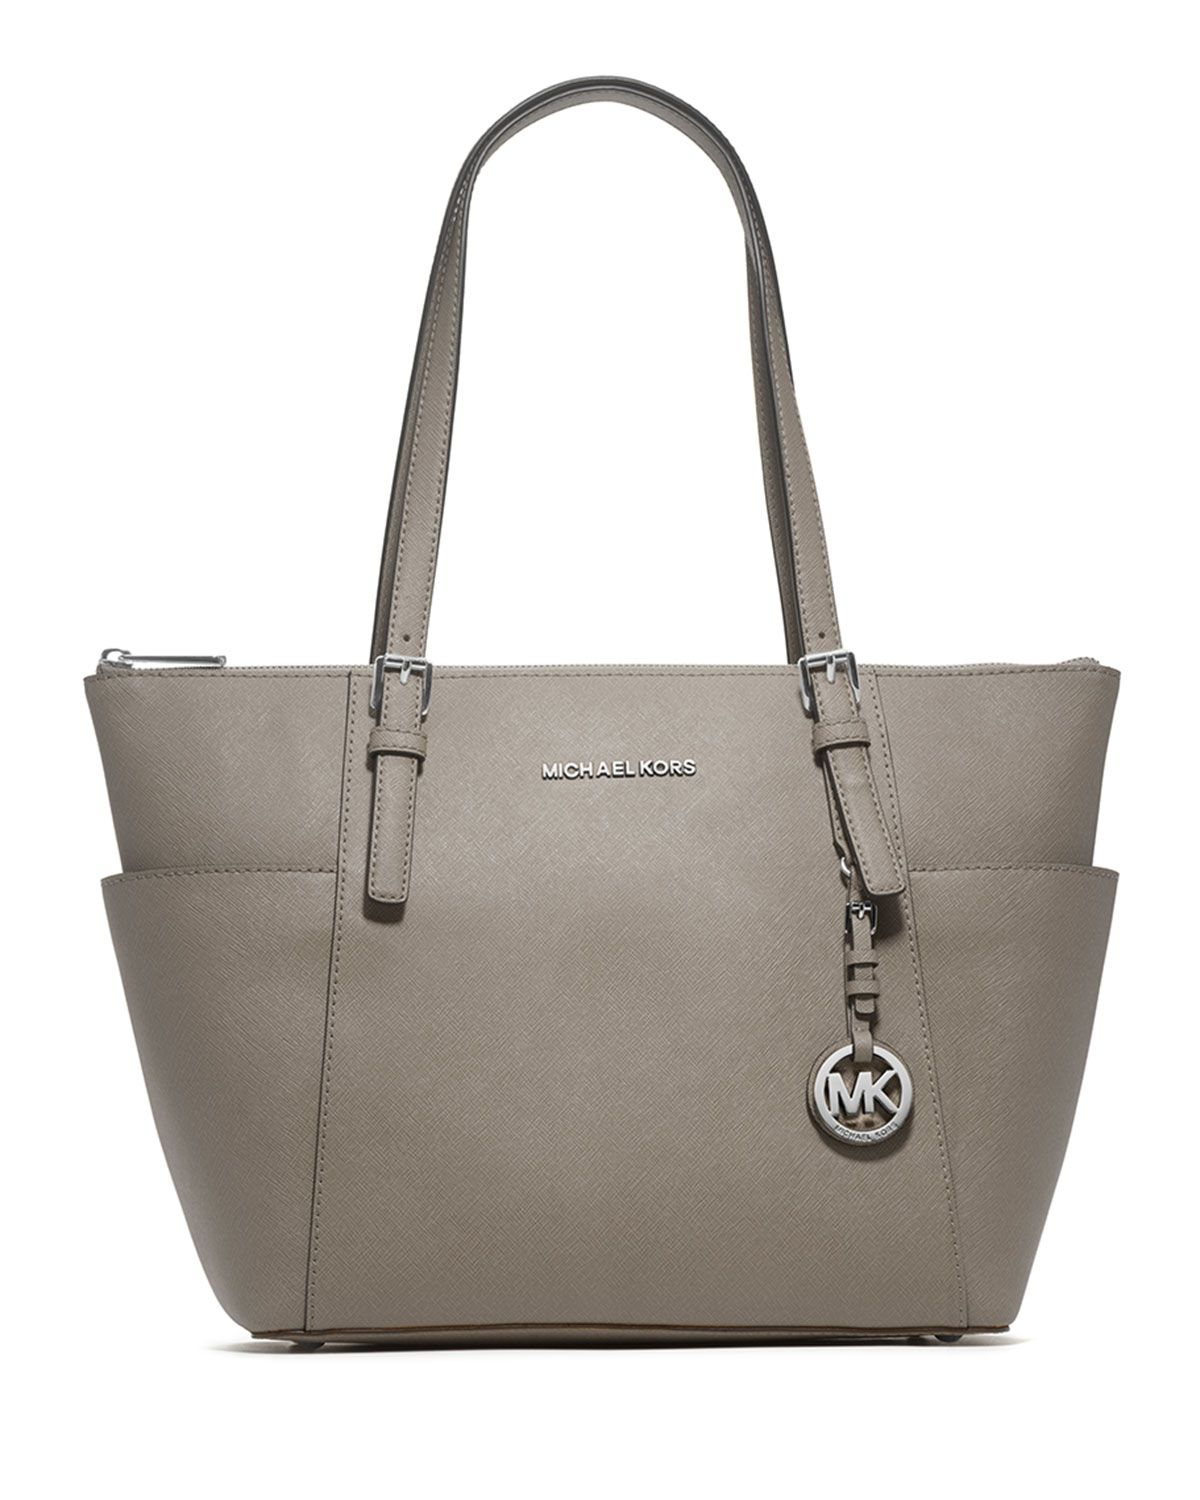 8361983446db Jet Set Top-Zip Saffiano Tote Bag, Pearl Gray by MICHAEL Michael Kors at  Neiman Marcus.